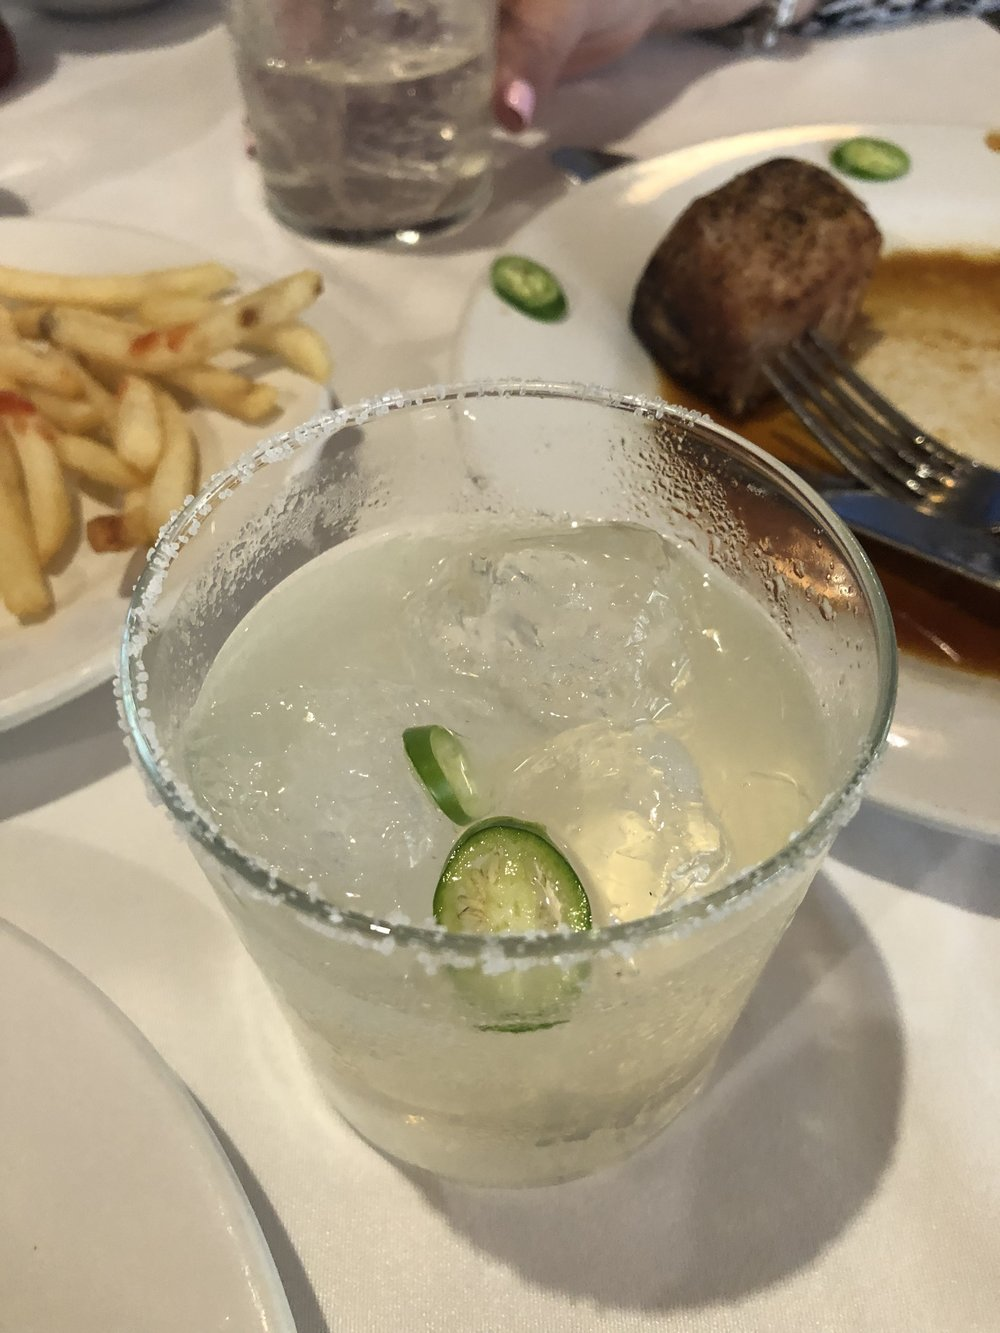 Natural margarita with a thin jalapeño slice.  Handily outperforms the watery jalapeño margarita  Blanco  Colima.